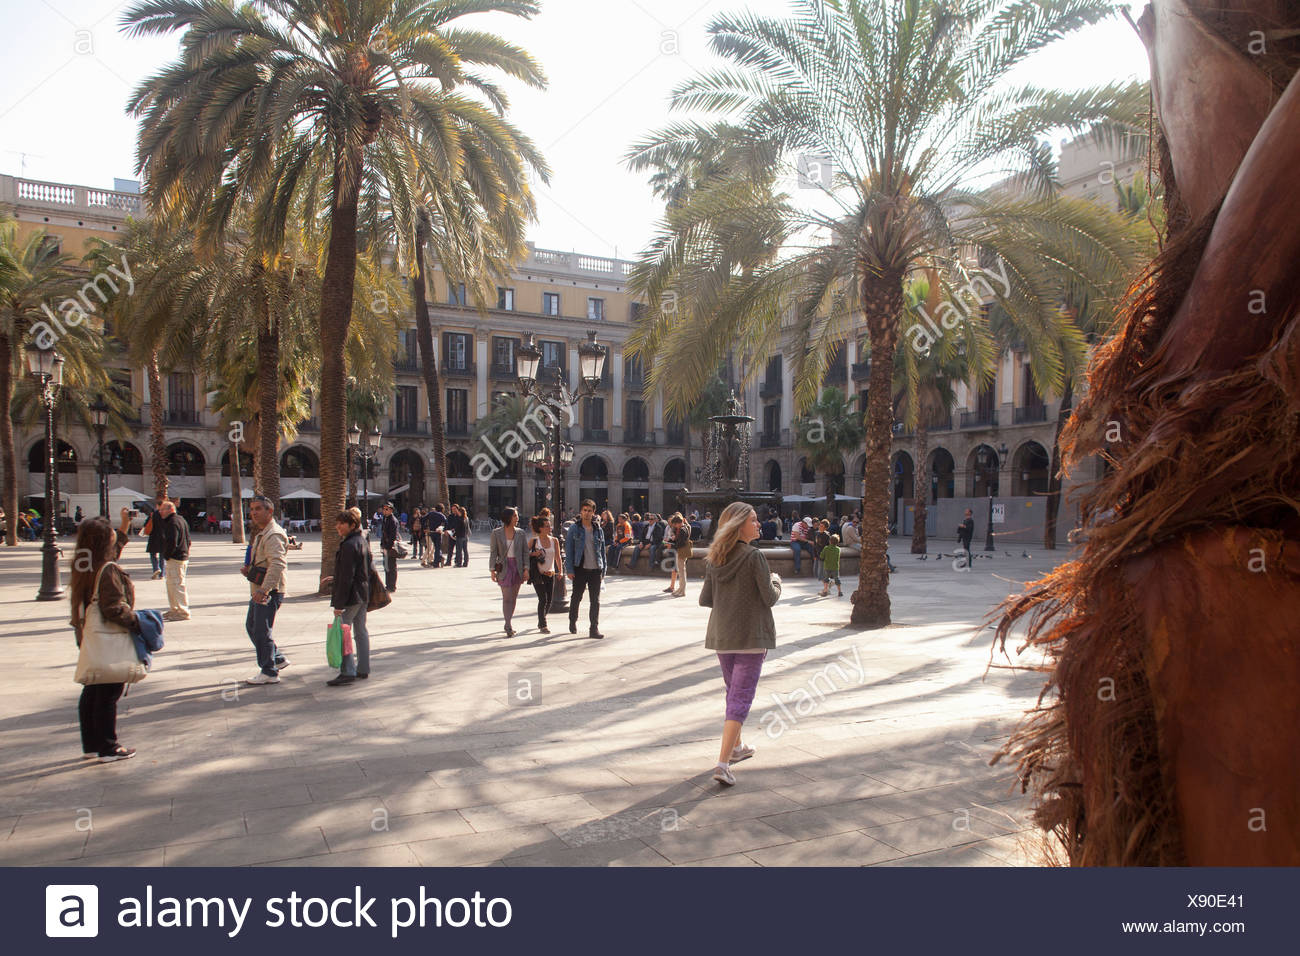 Placa Reial square, palm trees, tourists, historic district, Barcelona, Catalonia, Spain, Europe - Stock Image